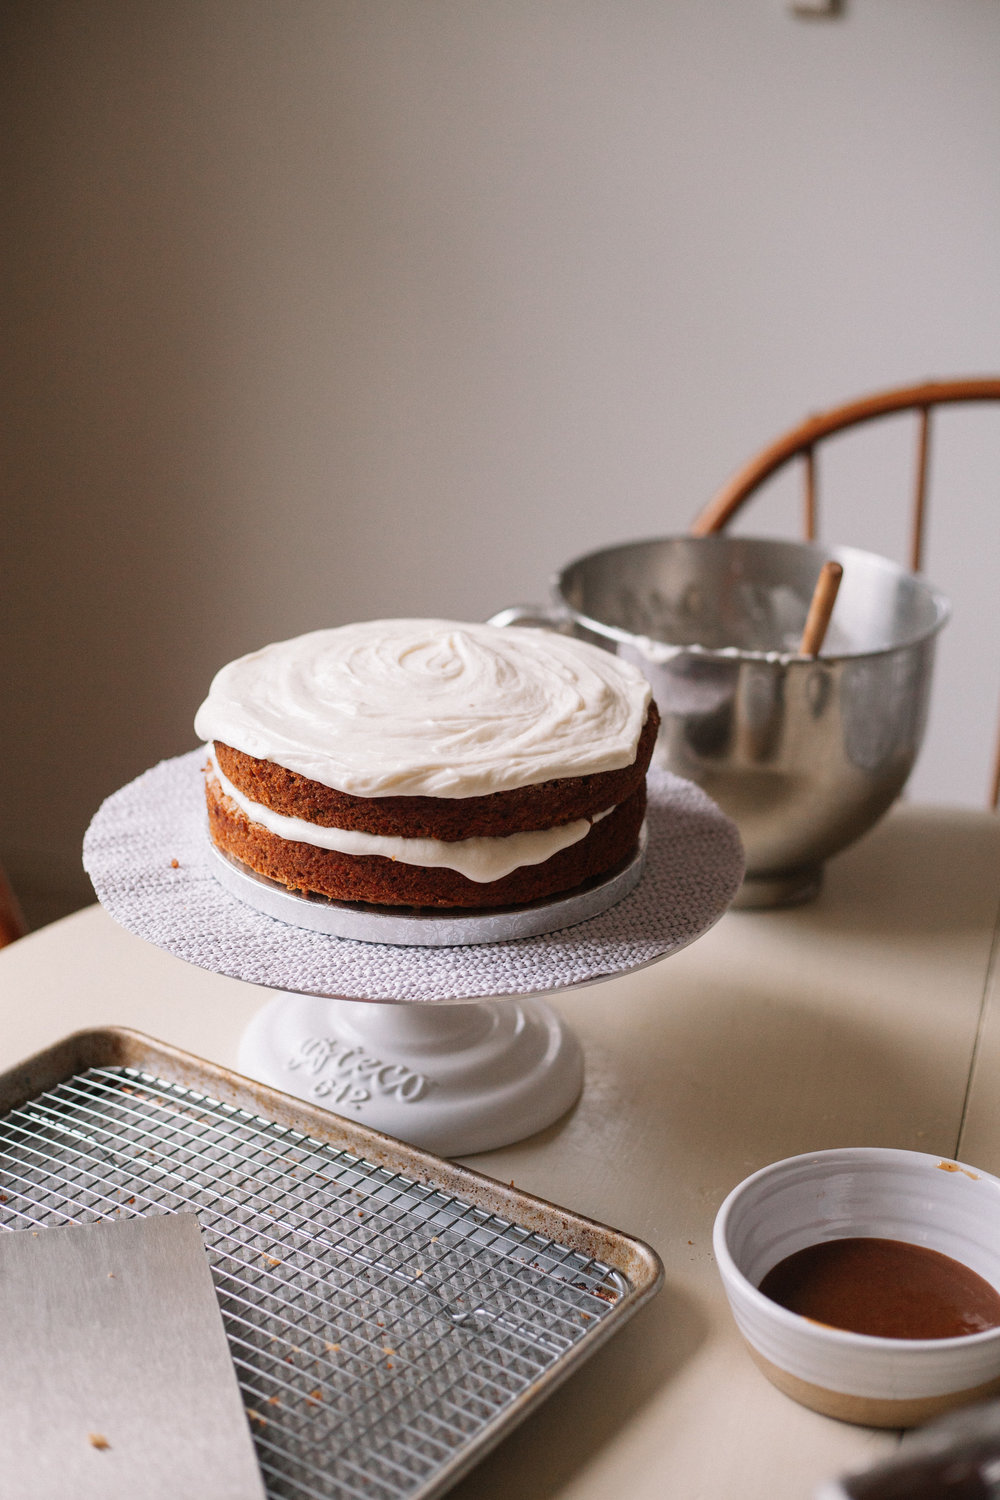 carrot cake with cream cheese frosting and date caramel (gluten free, dairy free) | marina gunn